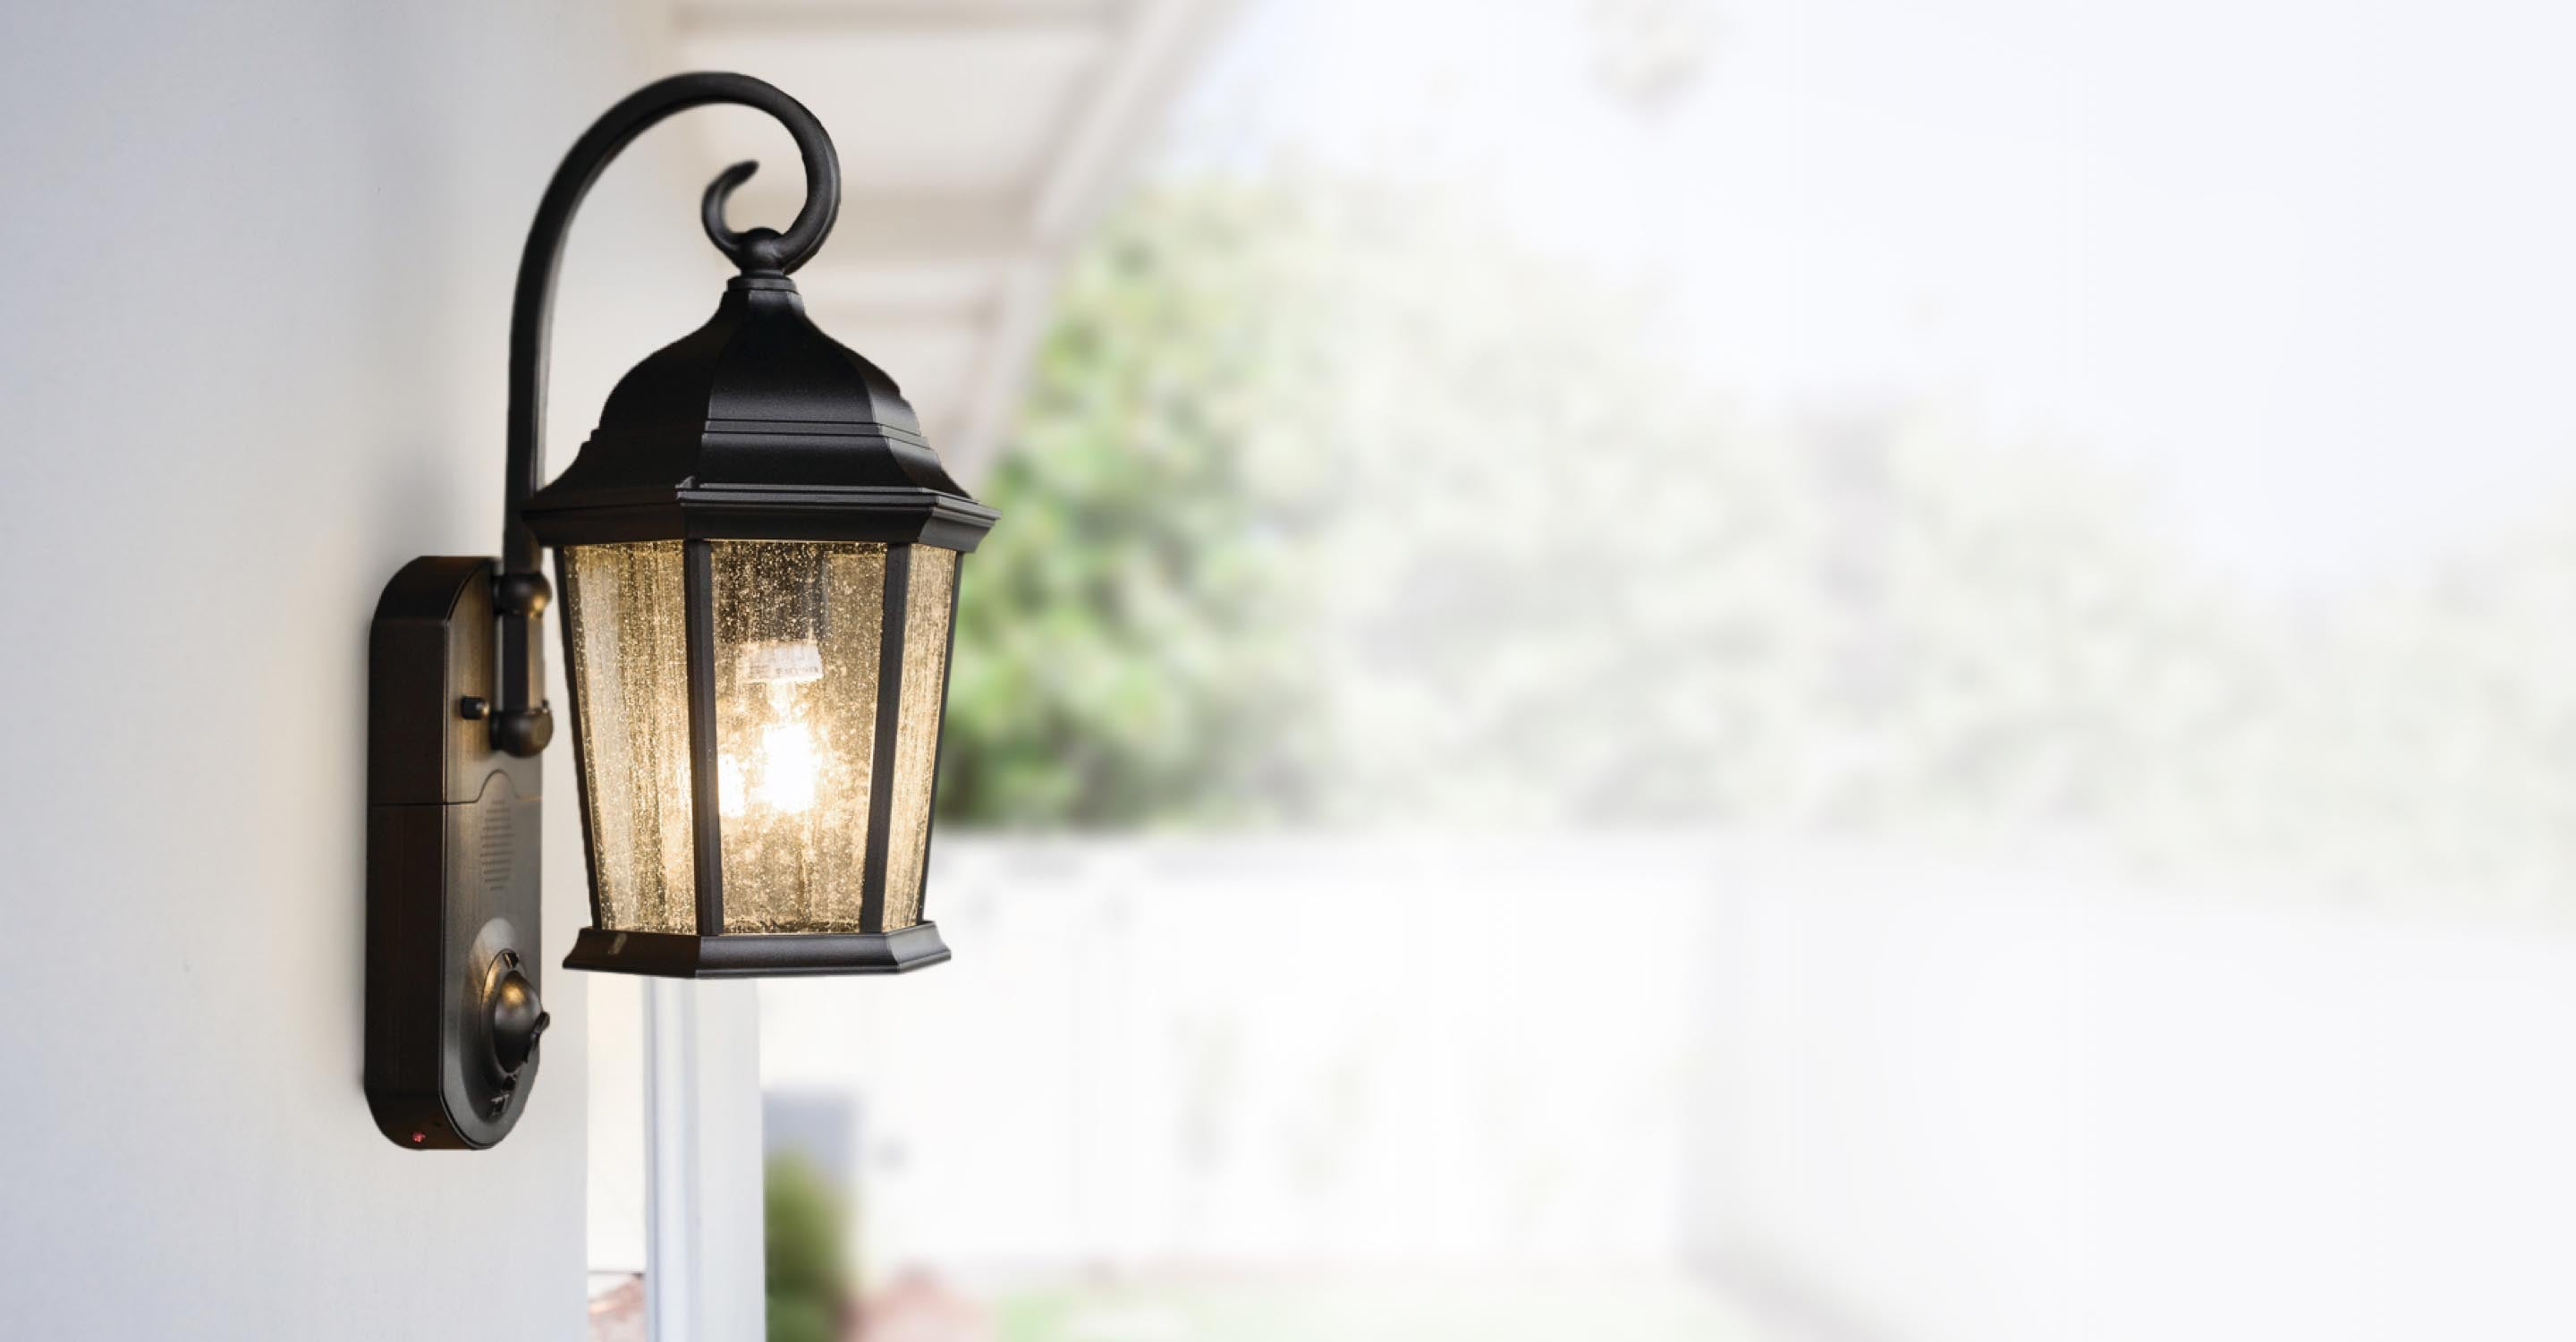 small large led outside lowes coach iron barn lighting hanging forge clearance lantern hubbardton mounted light outdoor external l lights simple for lamps exterior lamp wall glamorous design one candles rustic white brown upward sconces wooden contemporary sconce banded